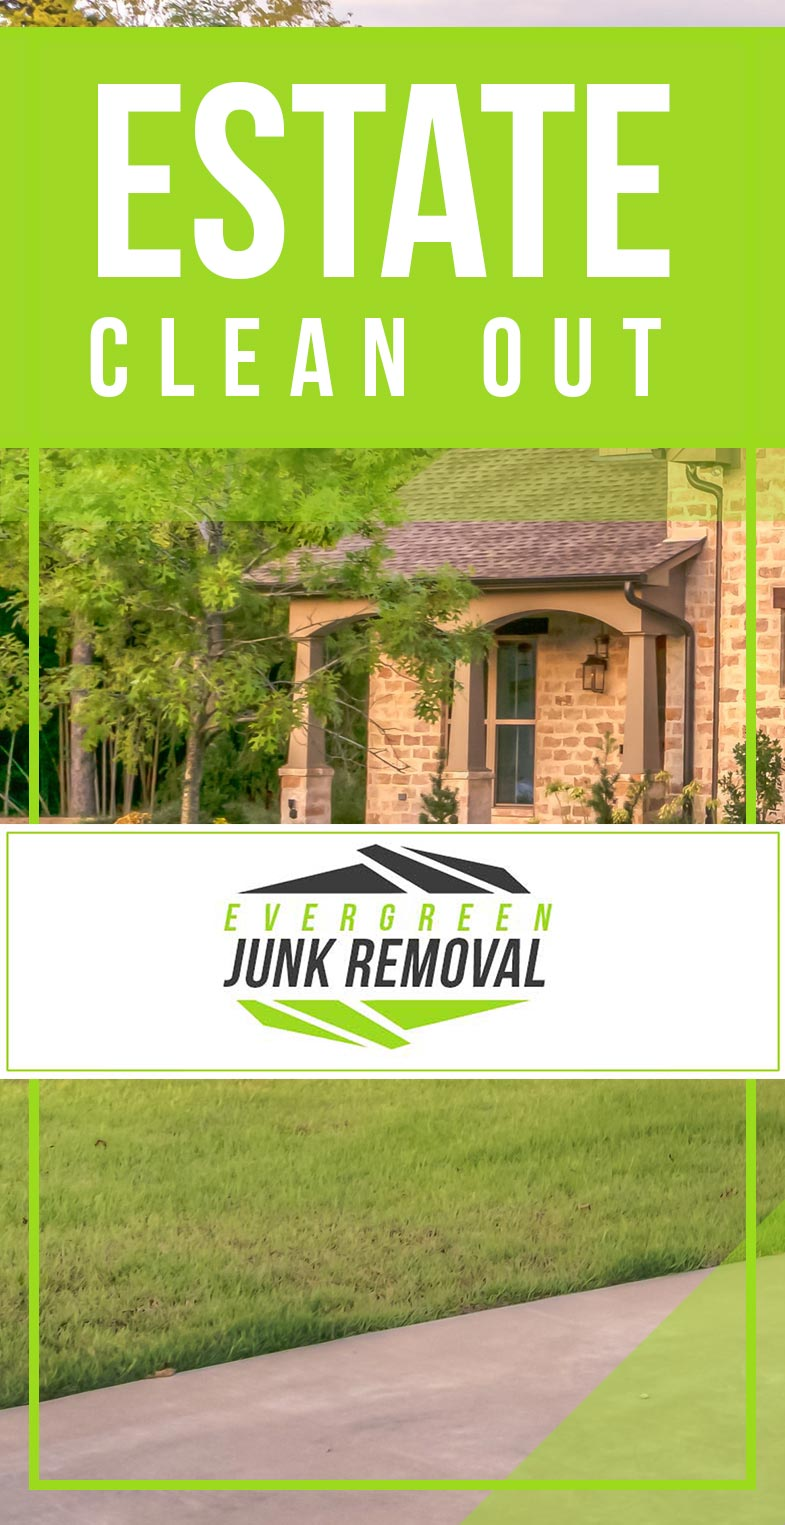 Altamonte-Springs-Estate-Clean-Out